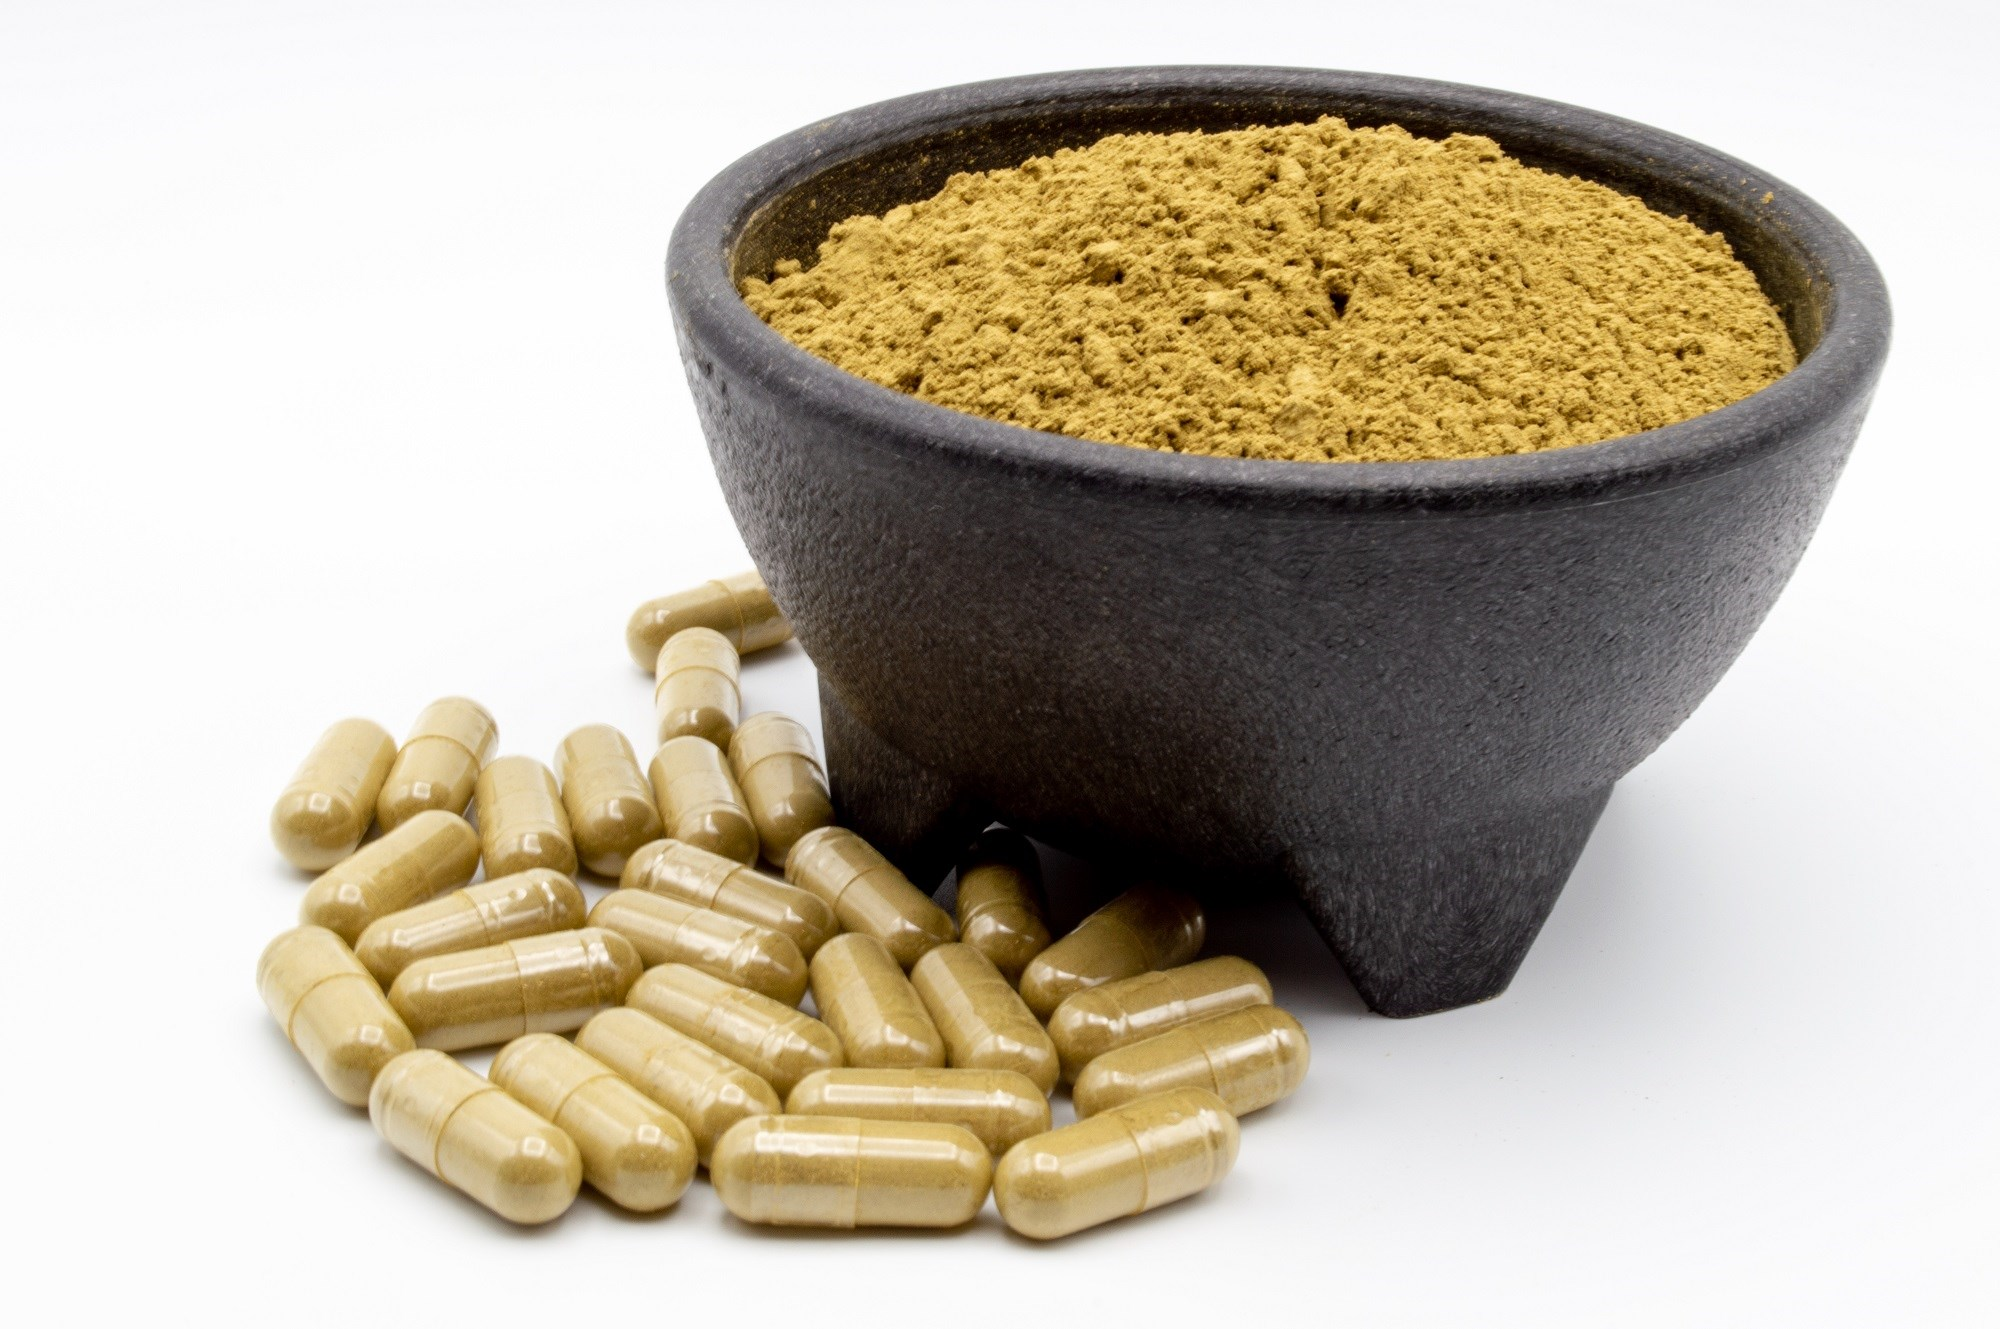 Case Study Report: Herbal Supplement Kratom Associated With Neonatal Abstinence Syndrome